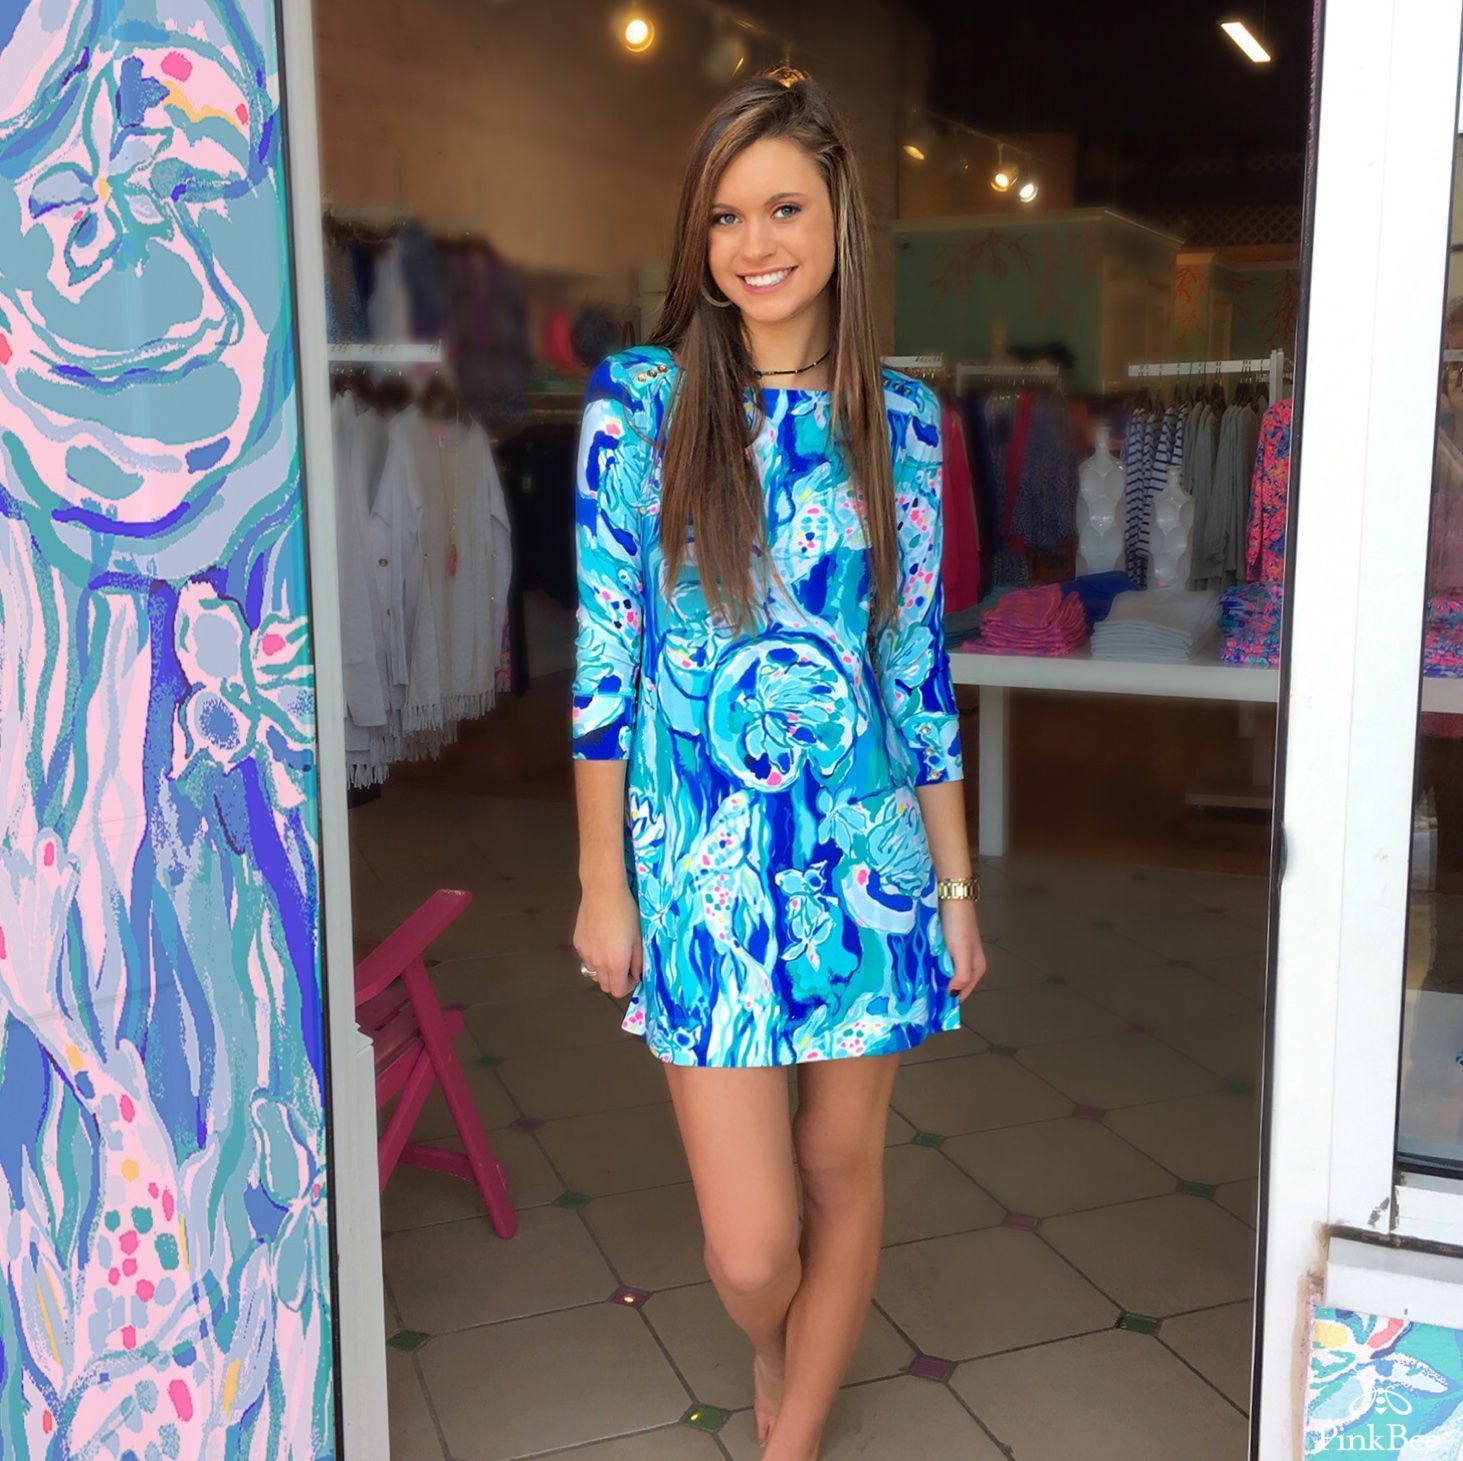 c4e70af4f3b4b7 Lilly Pulitzer SOPHIE DRESS Aquatic Garden $138 #yeahthatgreenville  @annacourtland @pinkbee